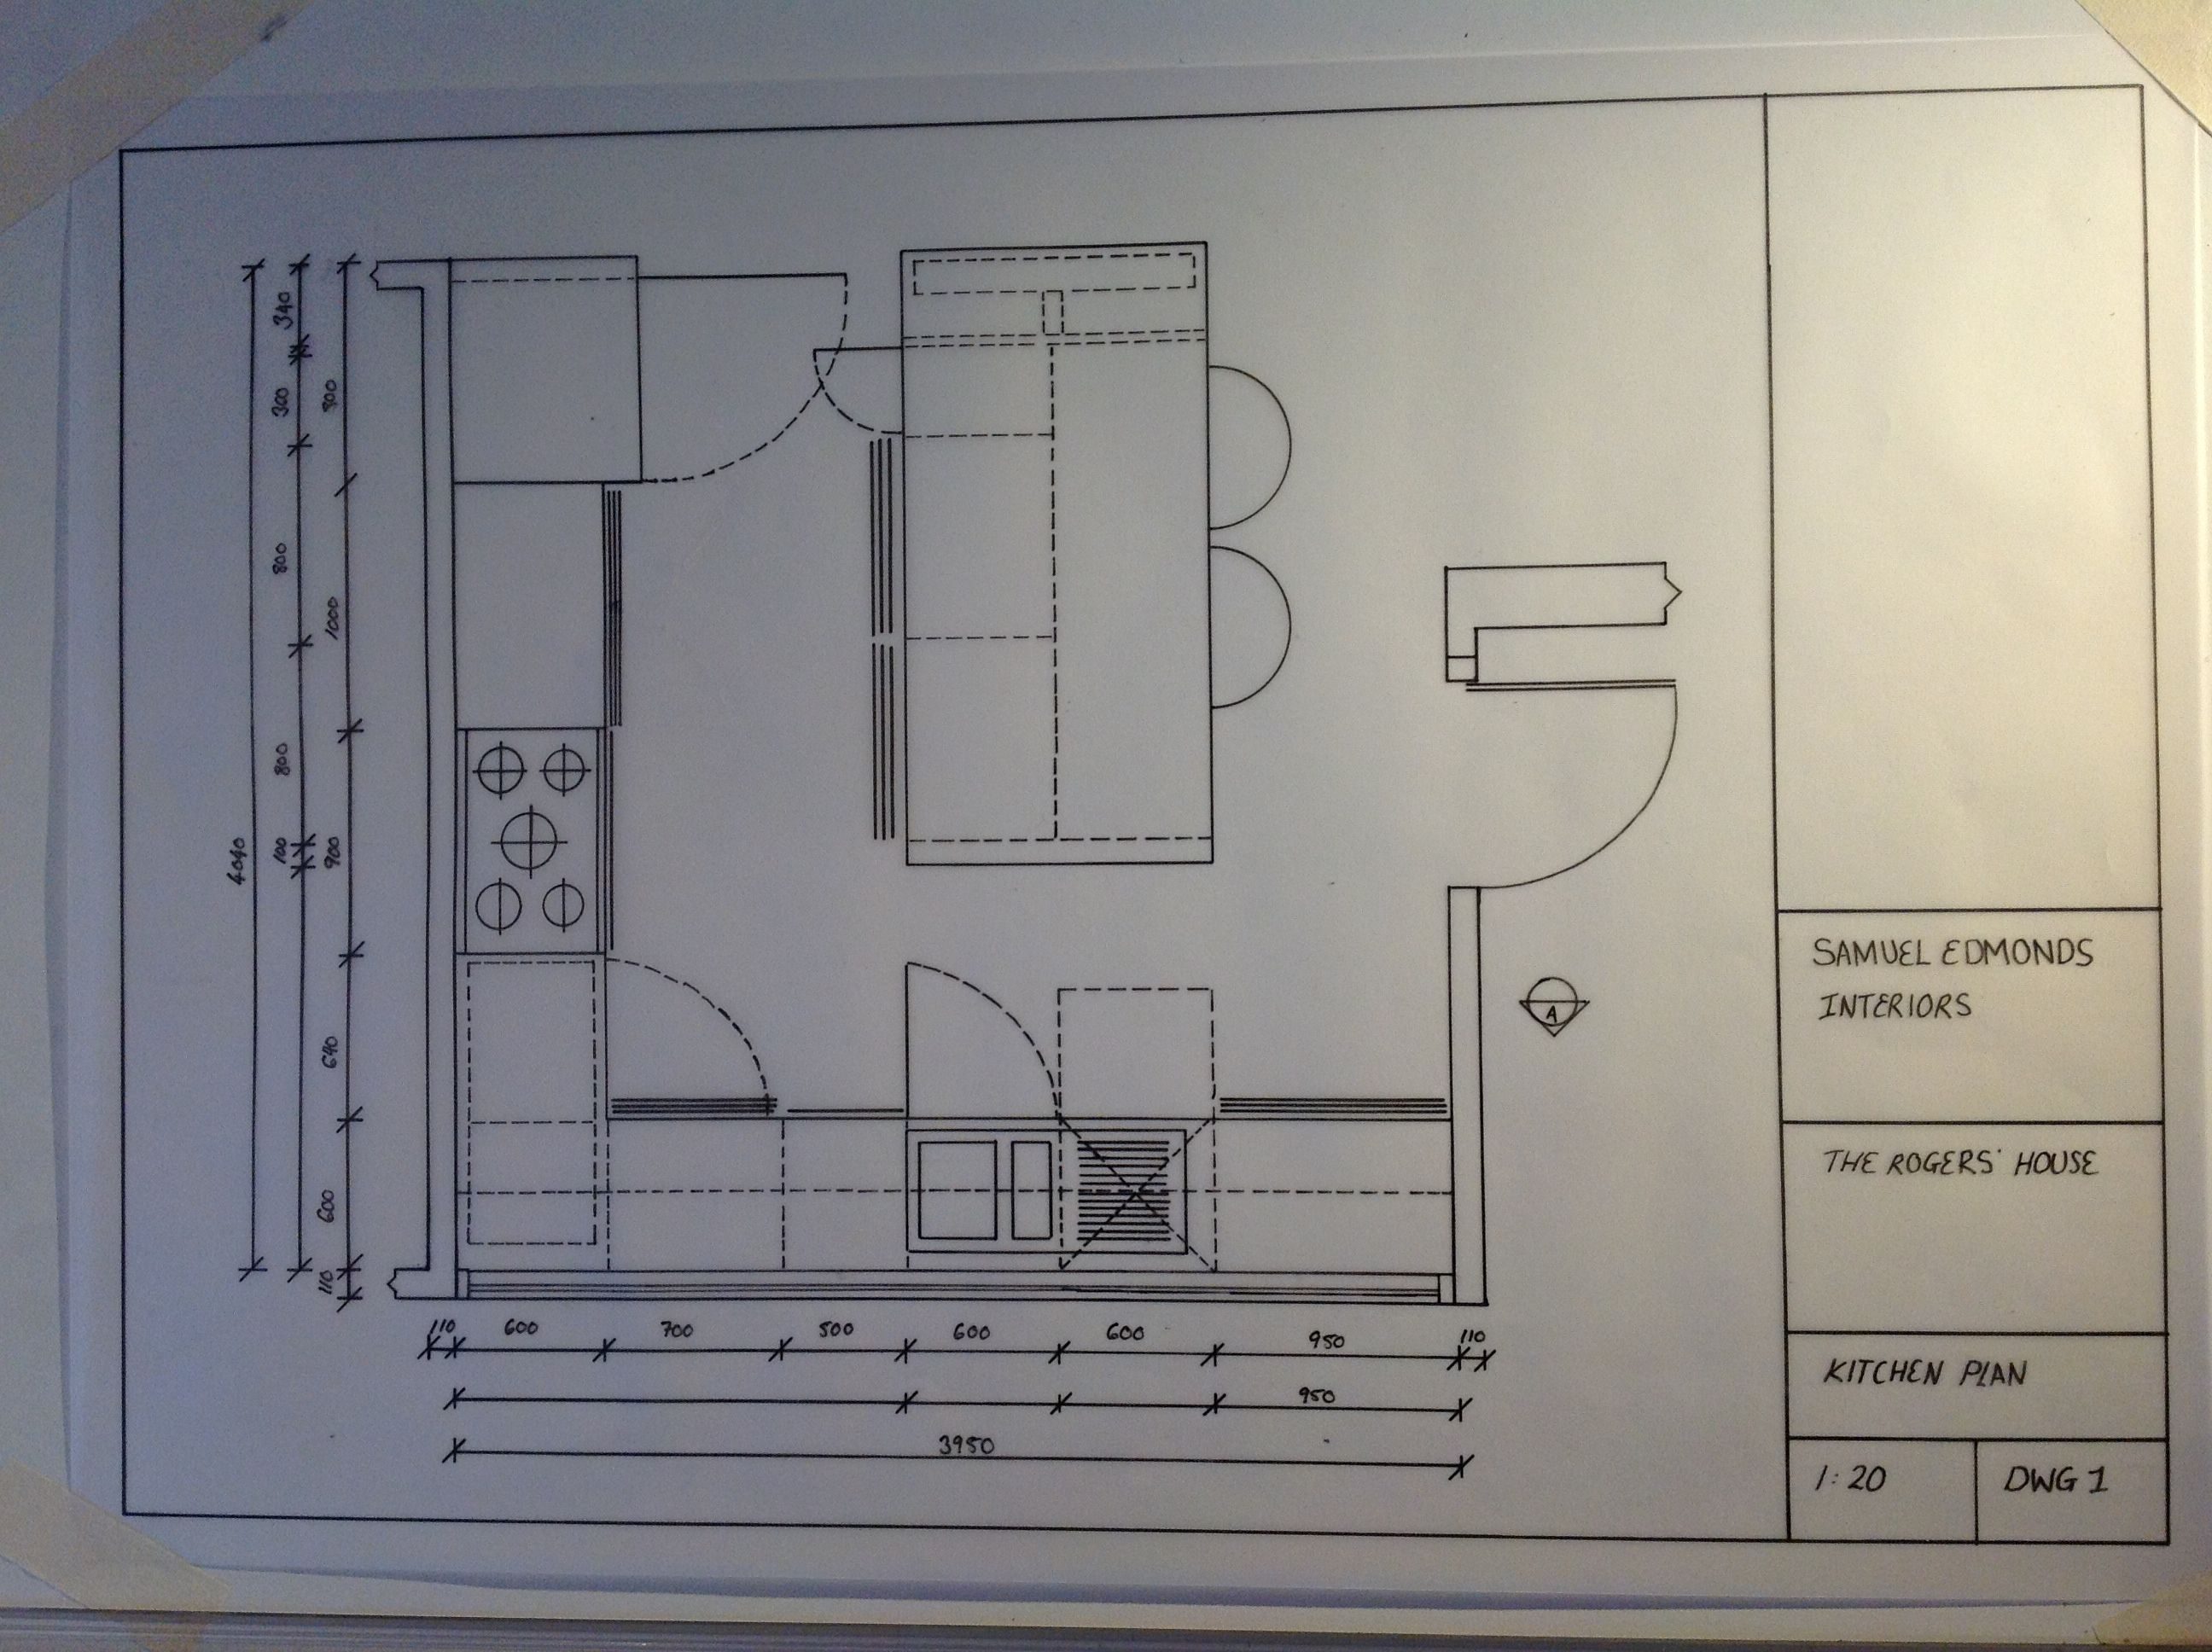 Kitchen plan - scale drawing 1.20 | Scale Drawings in 2019 ... on scale drawing examples, scale drawing bathroom, scale drawing detail, scale drawing model, scale drawing bedroom, scale drawing layout, scale drawings for students, scale drawing map, scale drawing building, orthographic drawing floor plan, autocad drawing floor plan, scale drawing living room, scale drawing kitchen, scale drawing activities, line drawing floor plan, scale drawing of a room, scale drawing furniture, scale drawing lesson plans,